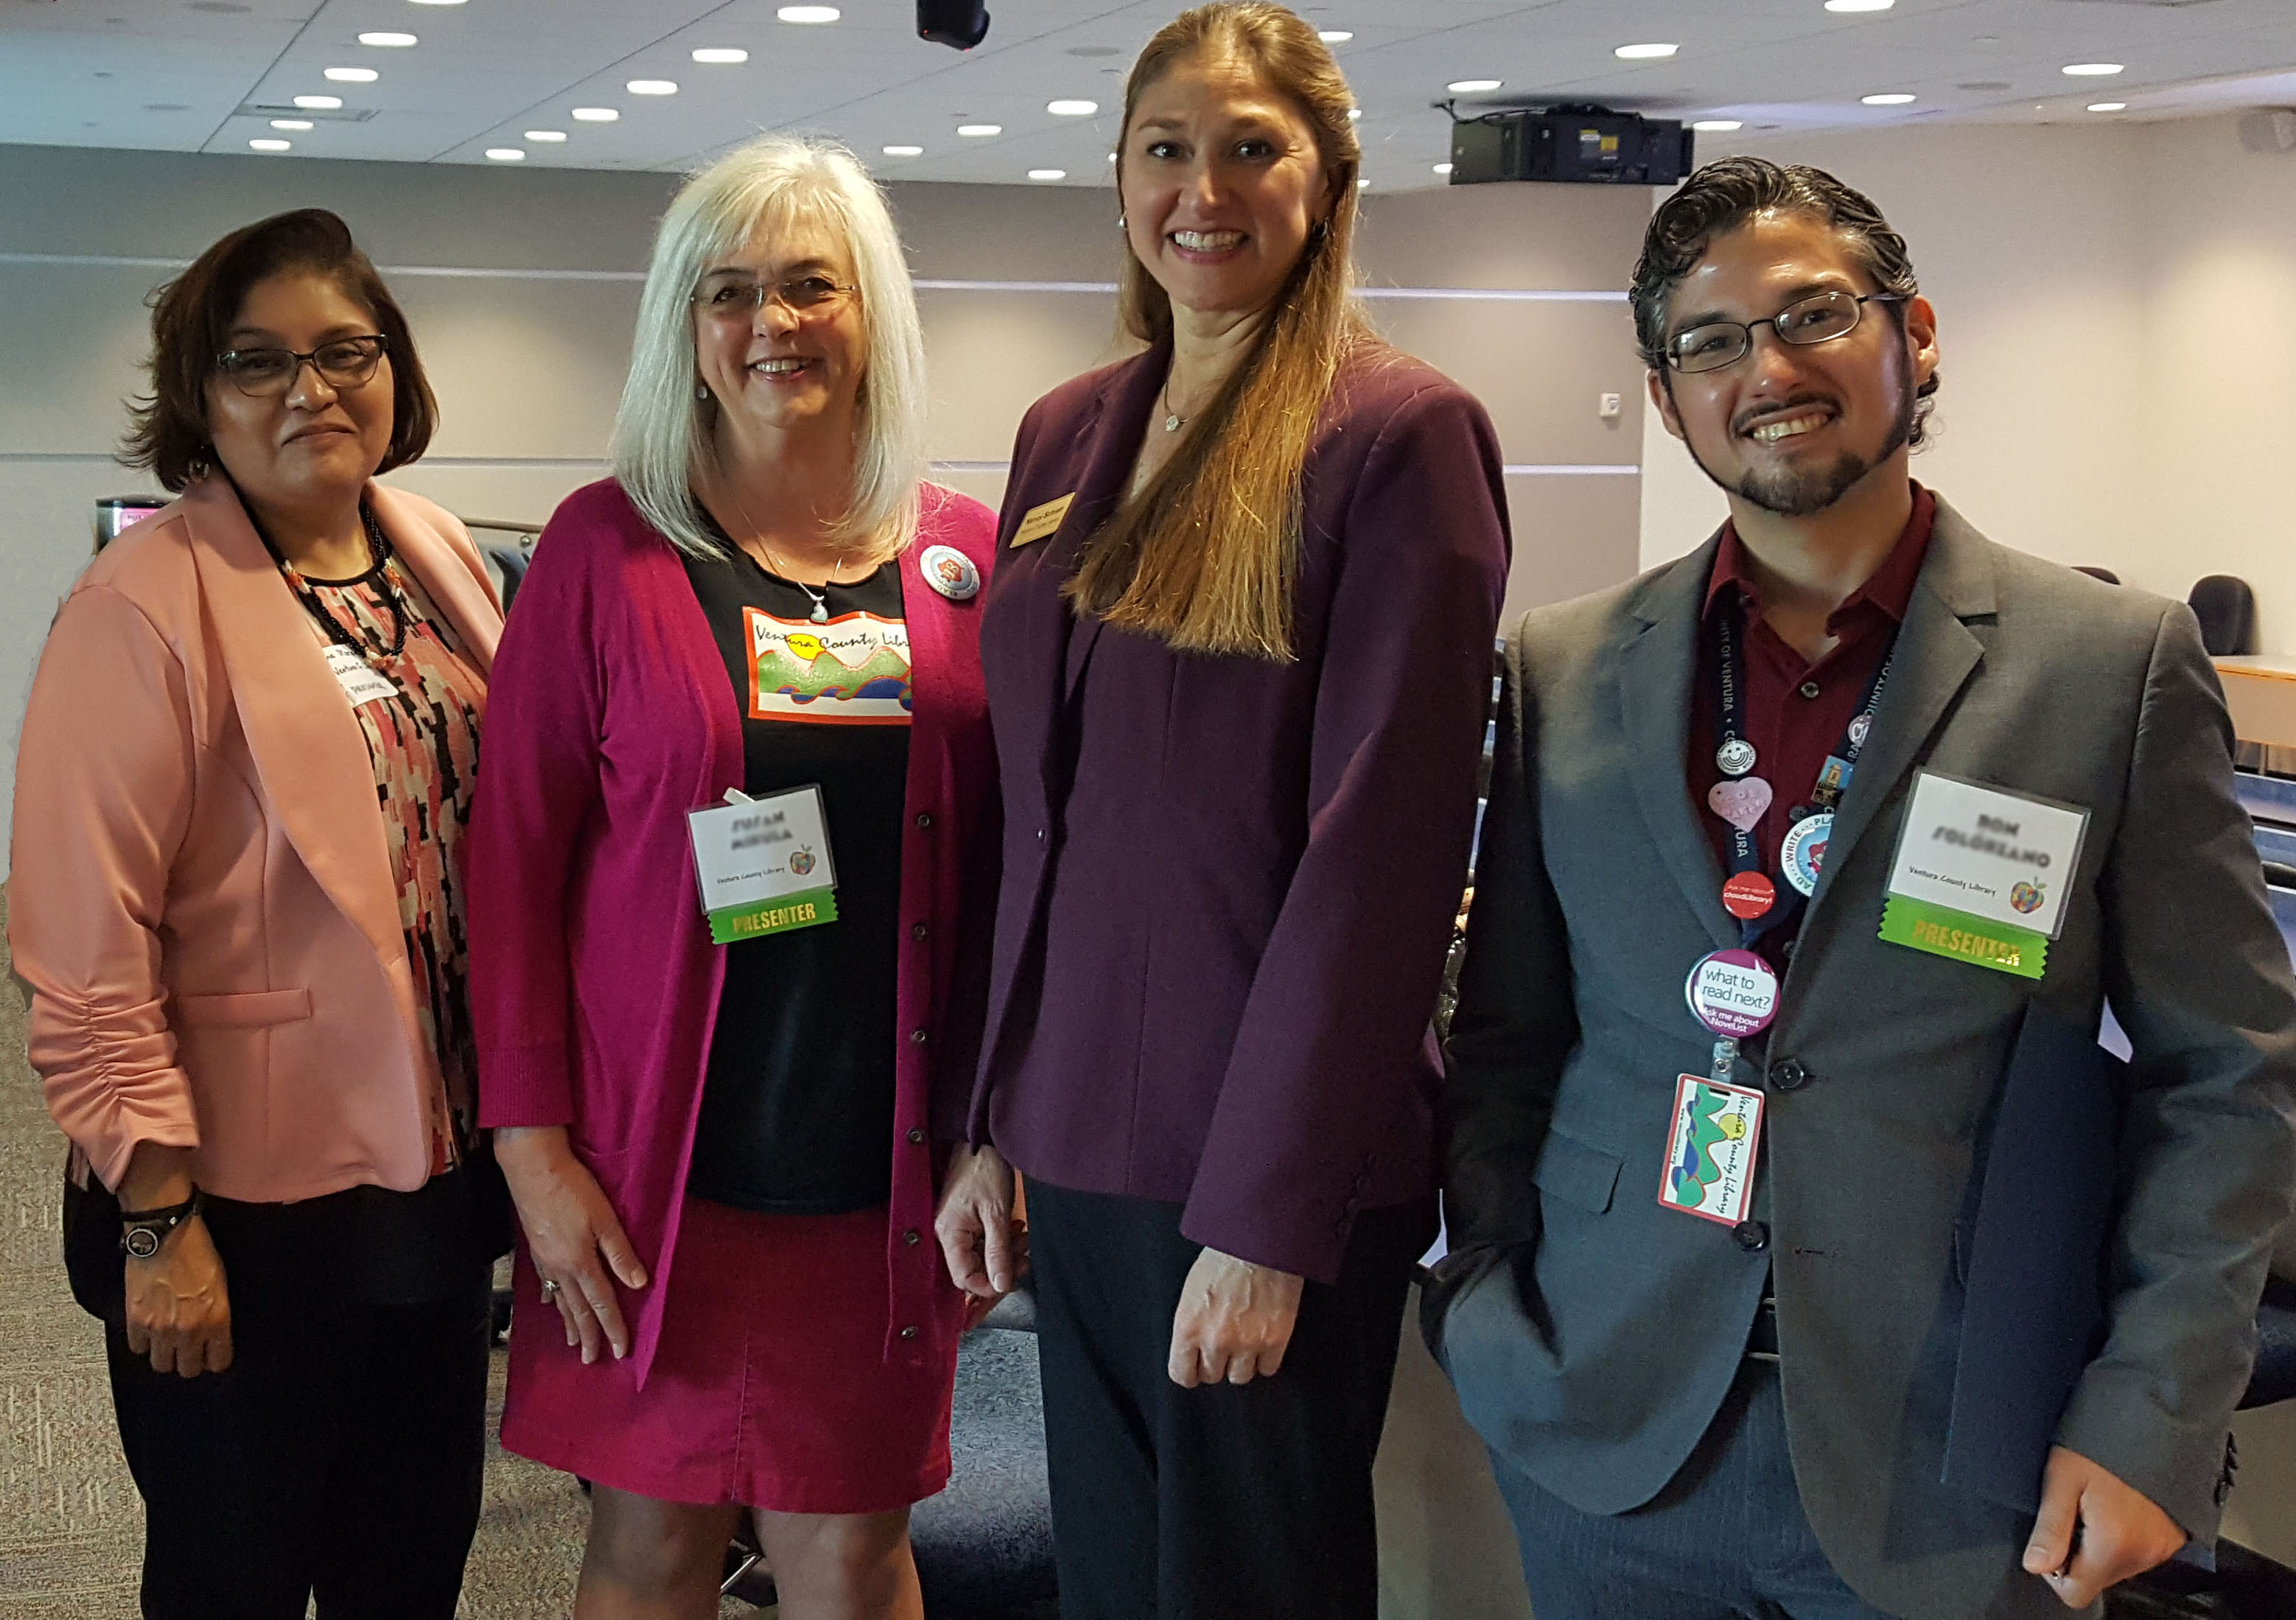 4 staff members of Ventura County Library representing different gender, age, and ethnicity